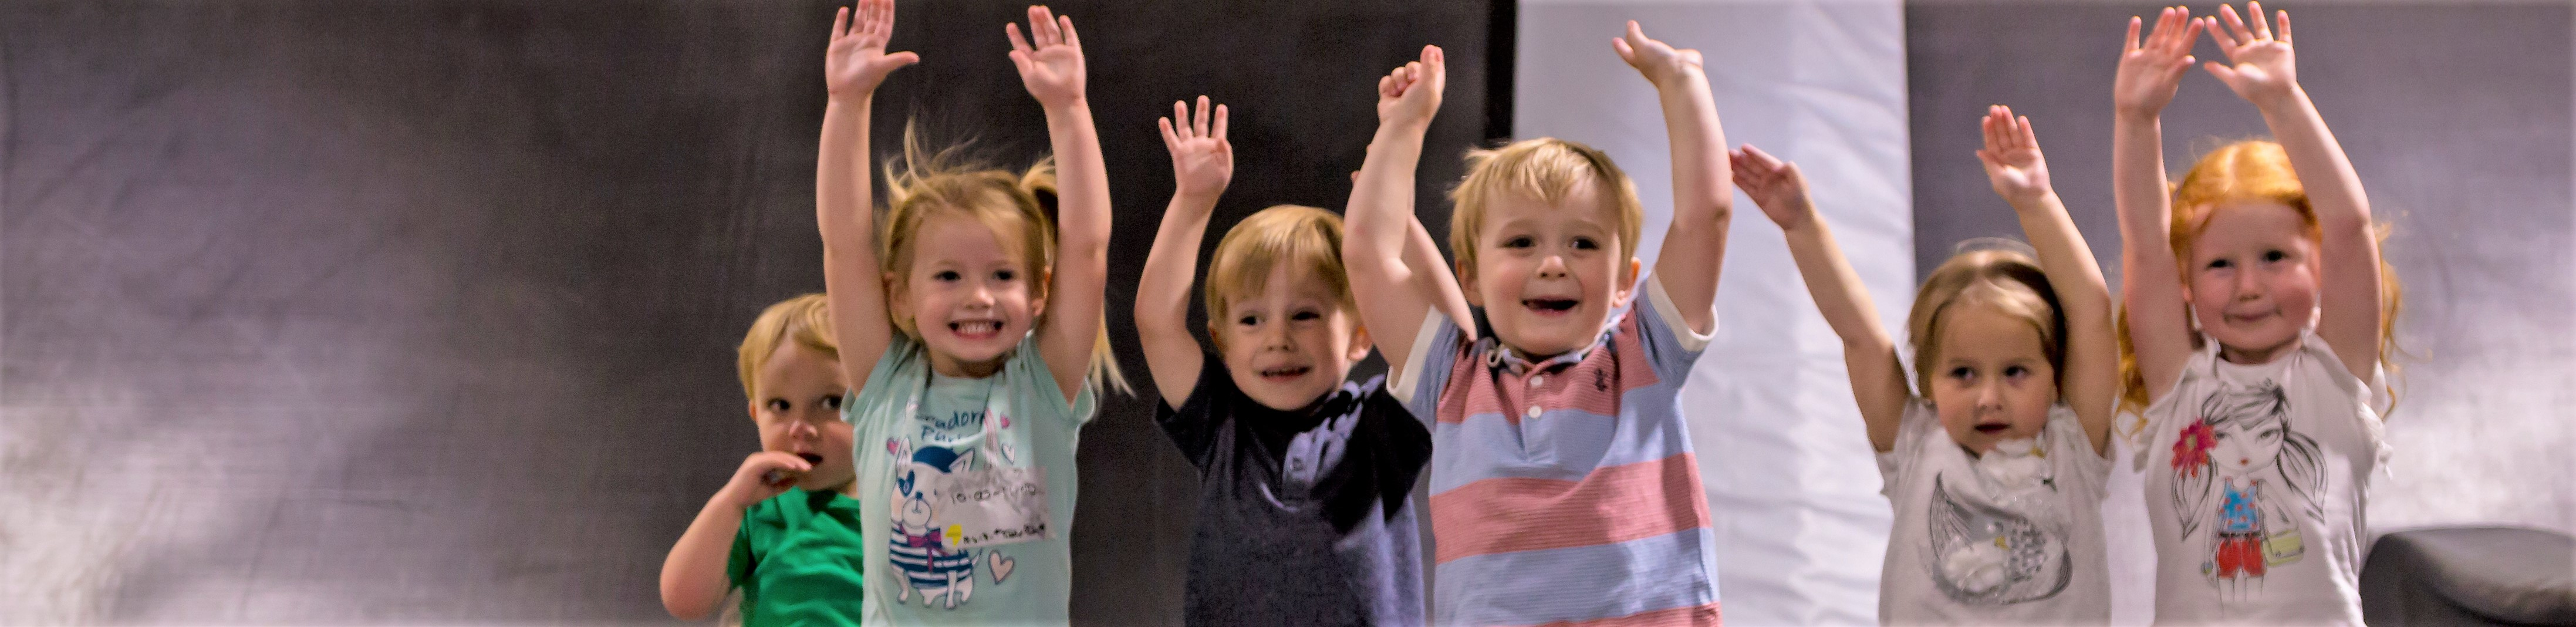 New Themed Toddler Events Launched at FREEDOME Cheshire Oaks